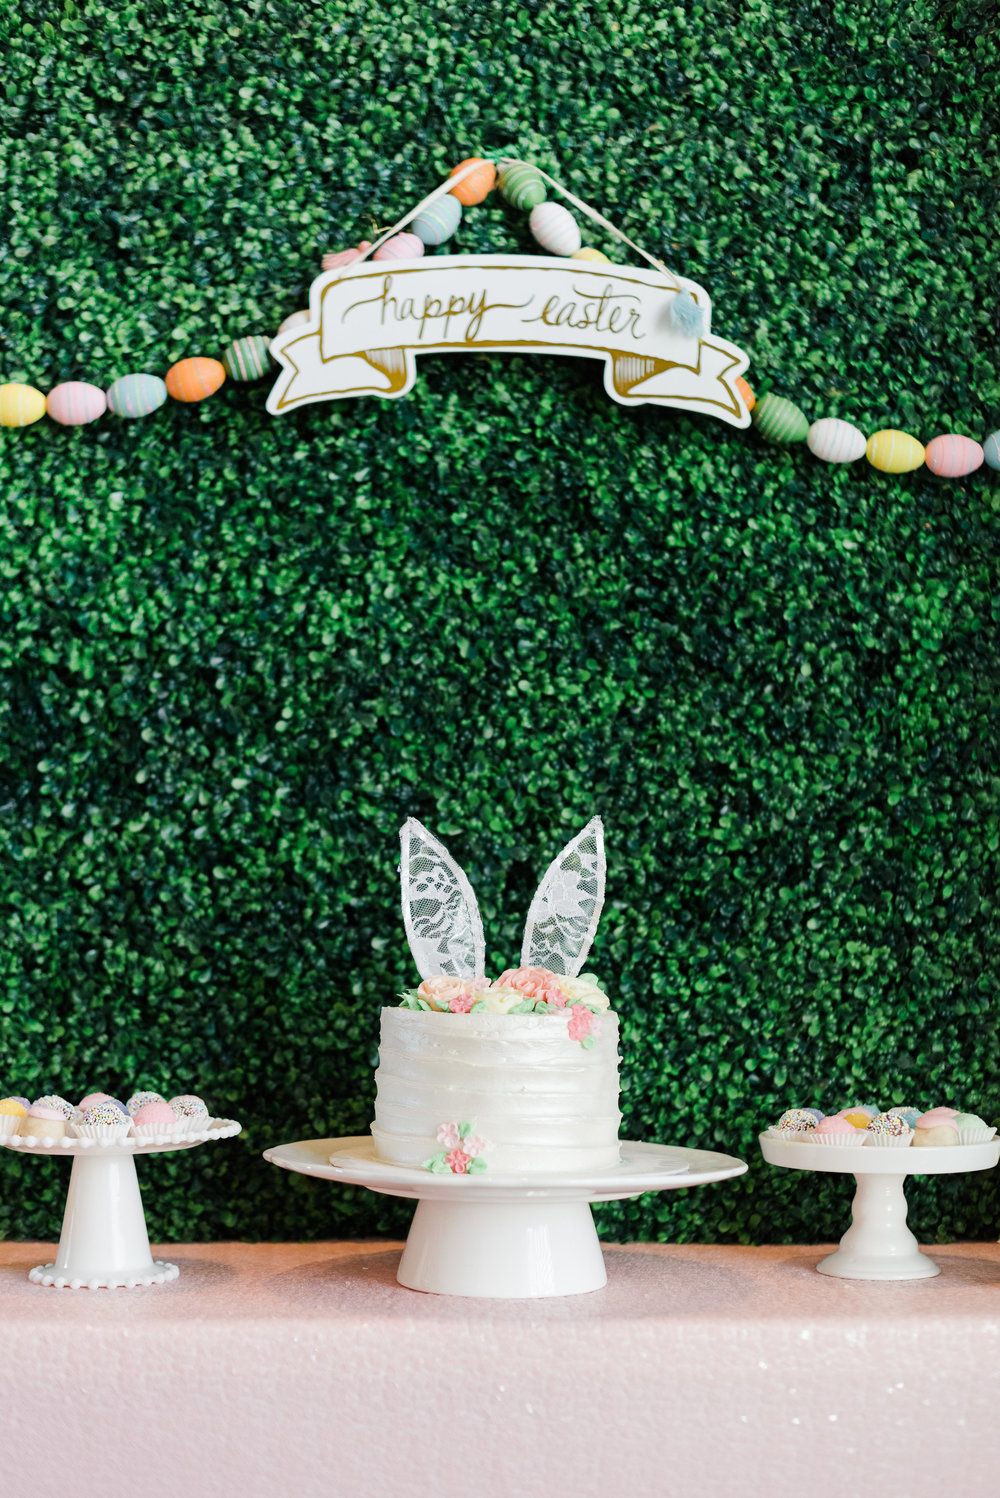 Entertain in style with fresh ideas for your spring Easter party!